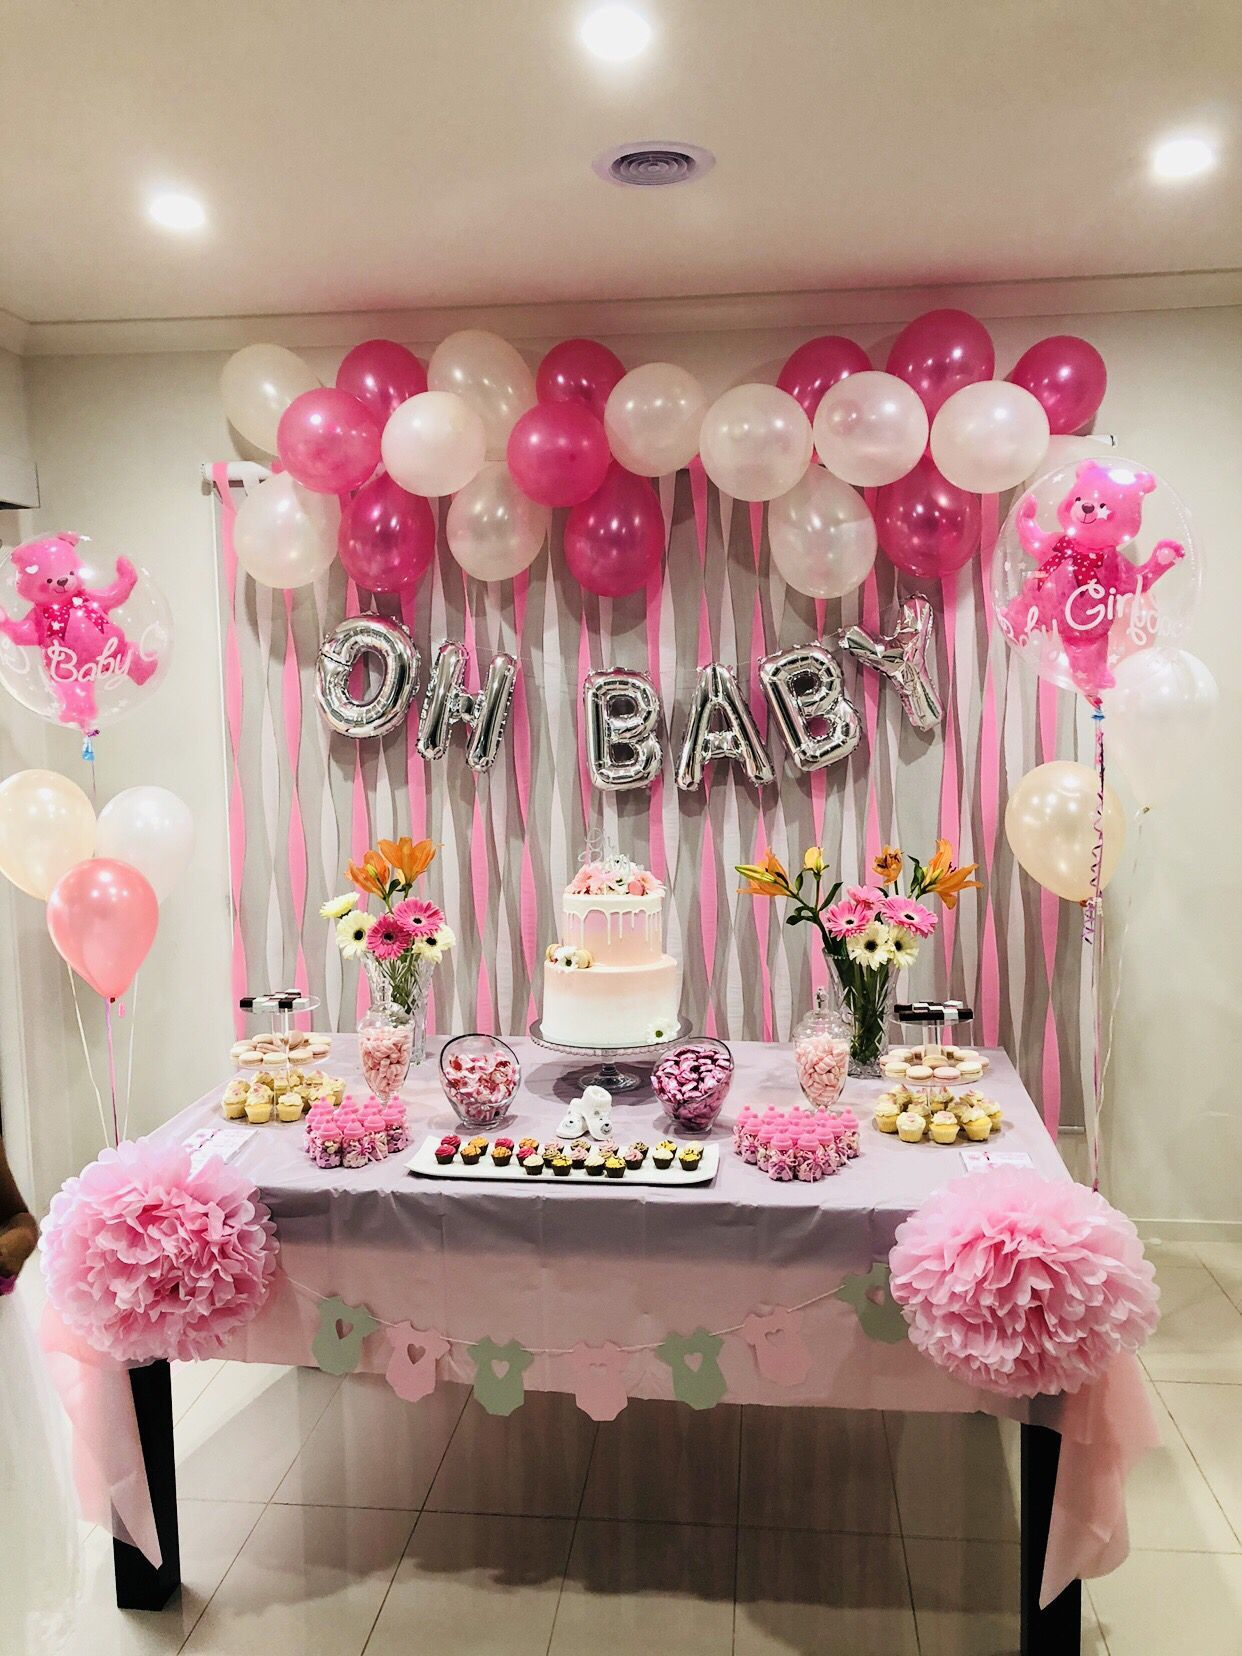 Decor Ideas Diy Wedding Decor For Party Ideas Decor Pallet Ideas Ideas To Decor Ba In 2020 Baby Shower Princess Girl Baby Shower Decorations Decoracion Baby Shower